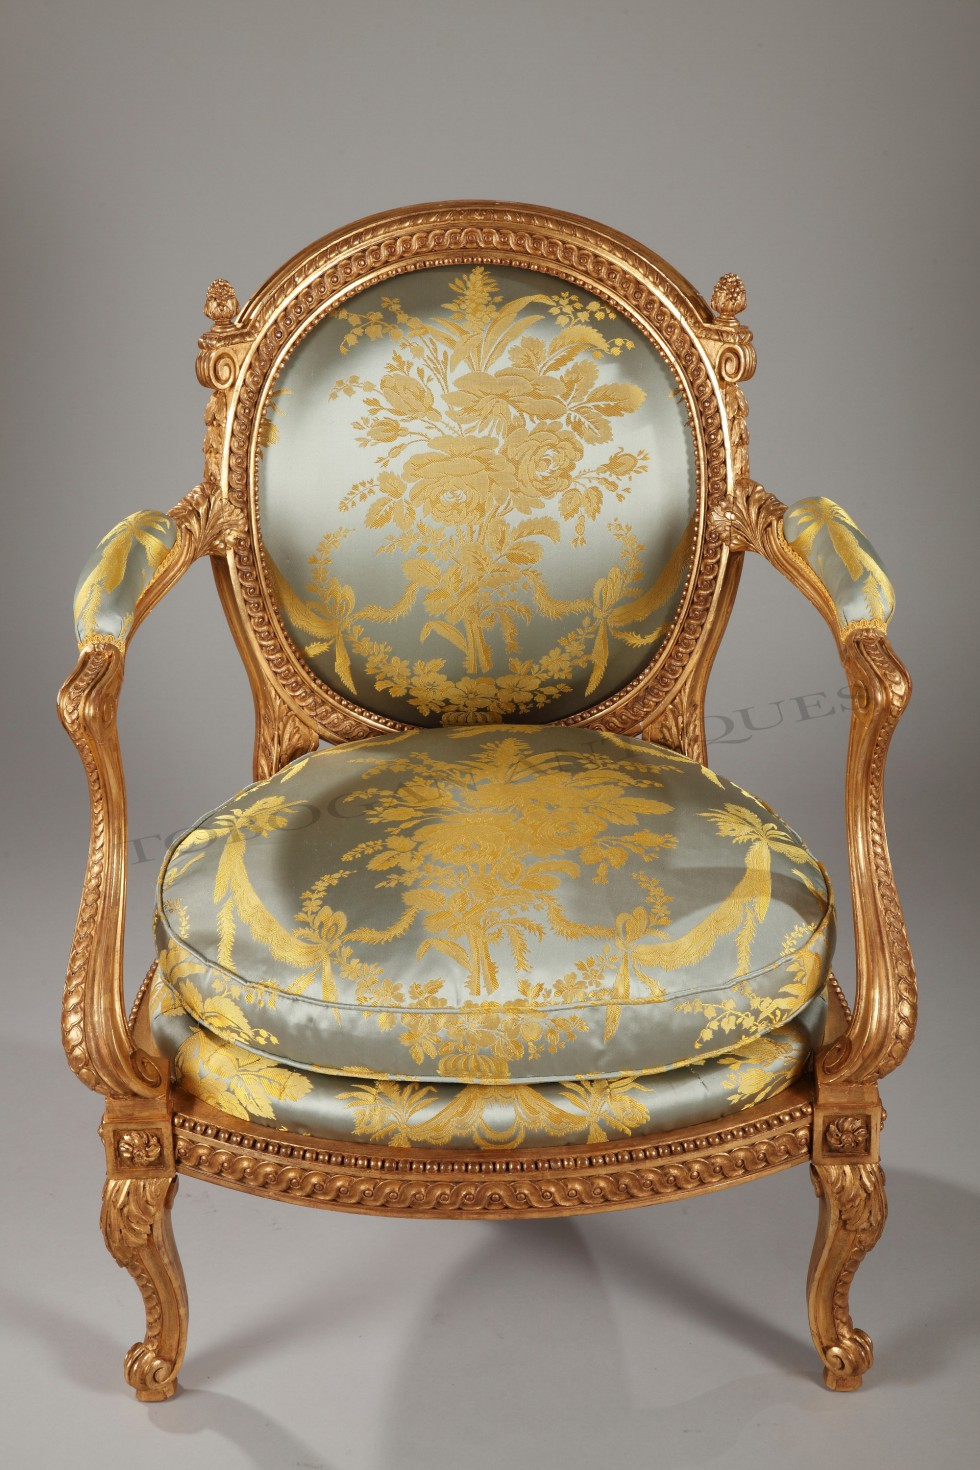 A rare gilt-wood armchair <br/> for a Boudoir